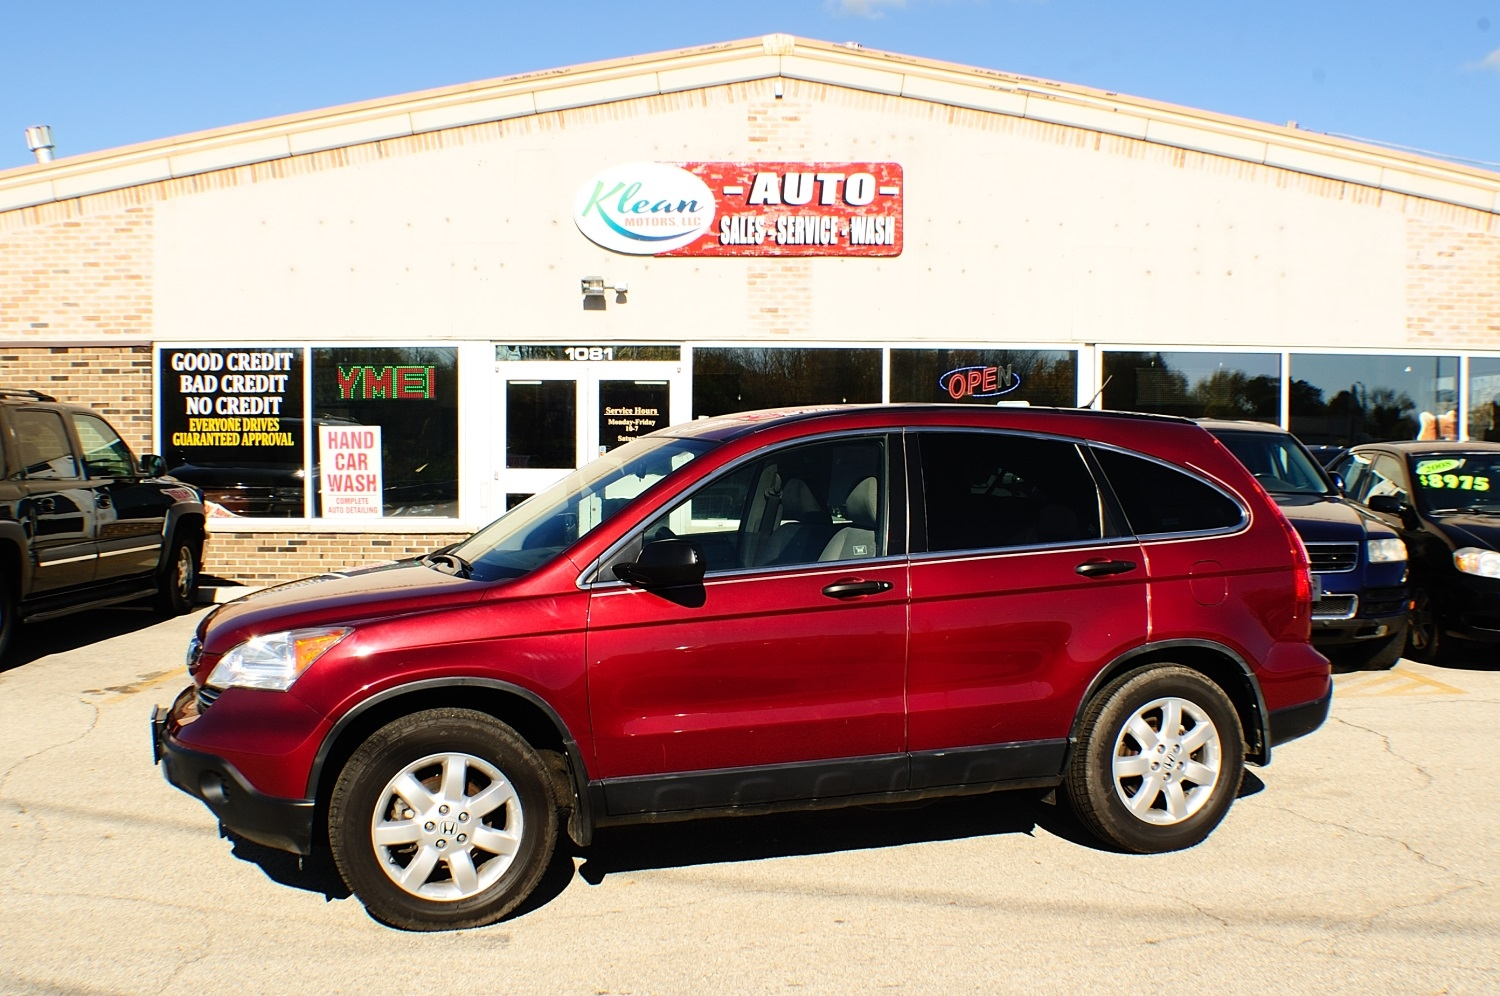 2008 Honda CRV Red Used 4x2 SUV Sale Antioch Zion Waukegan Lake County Illinois